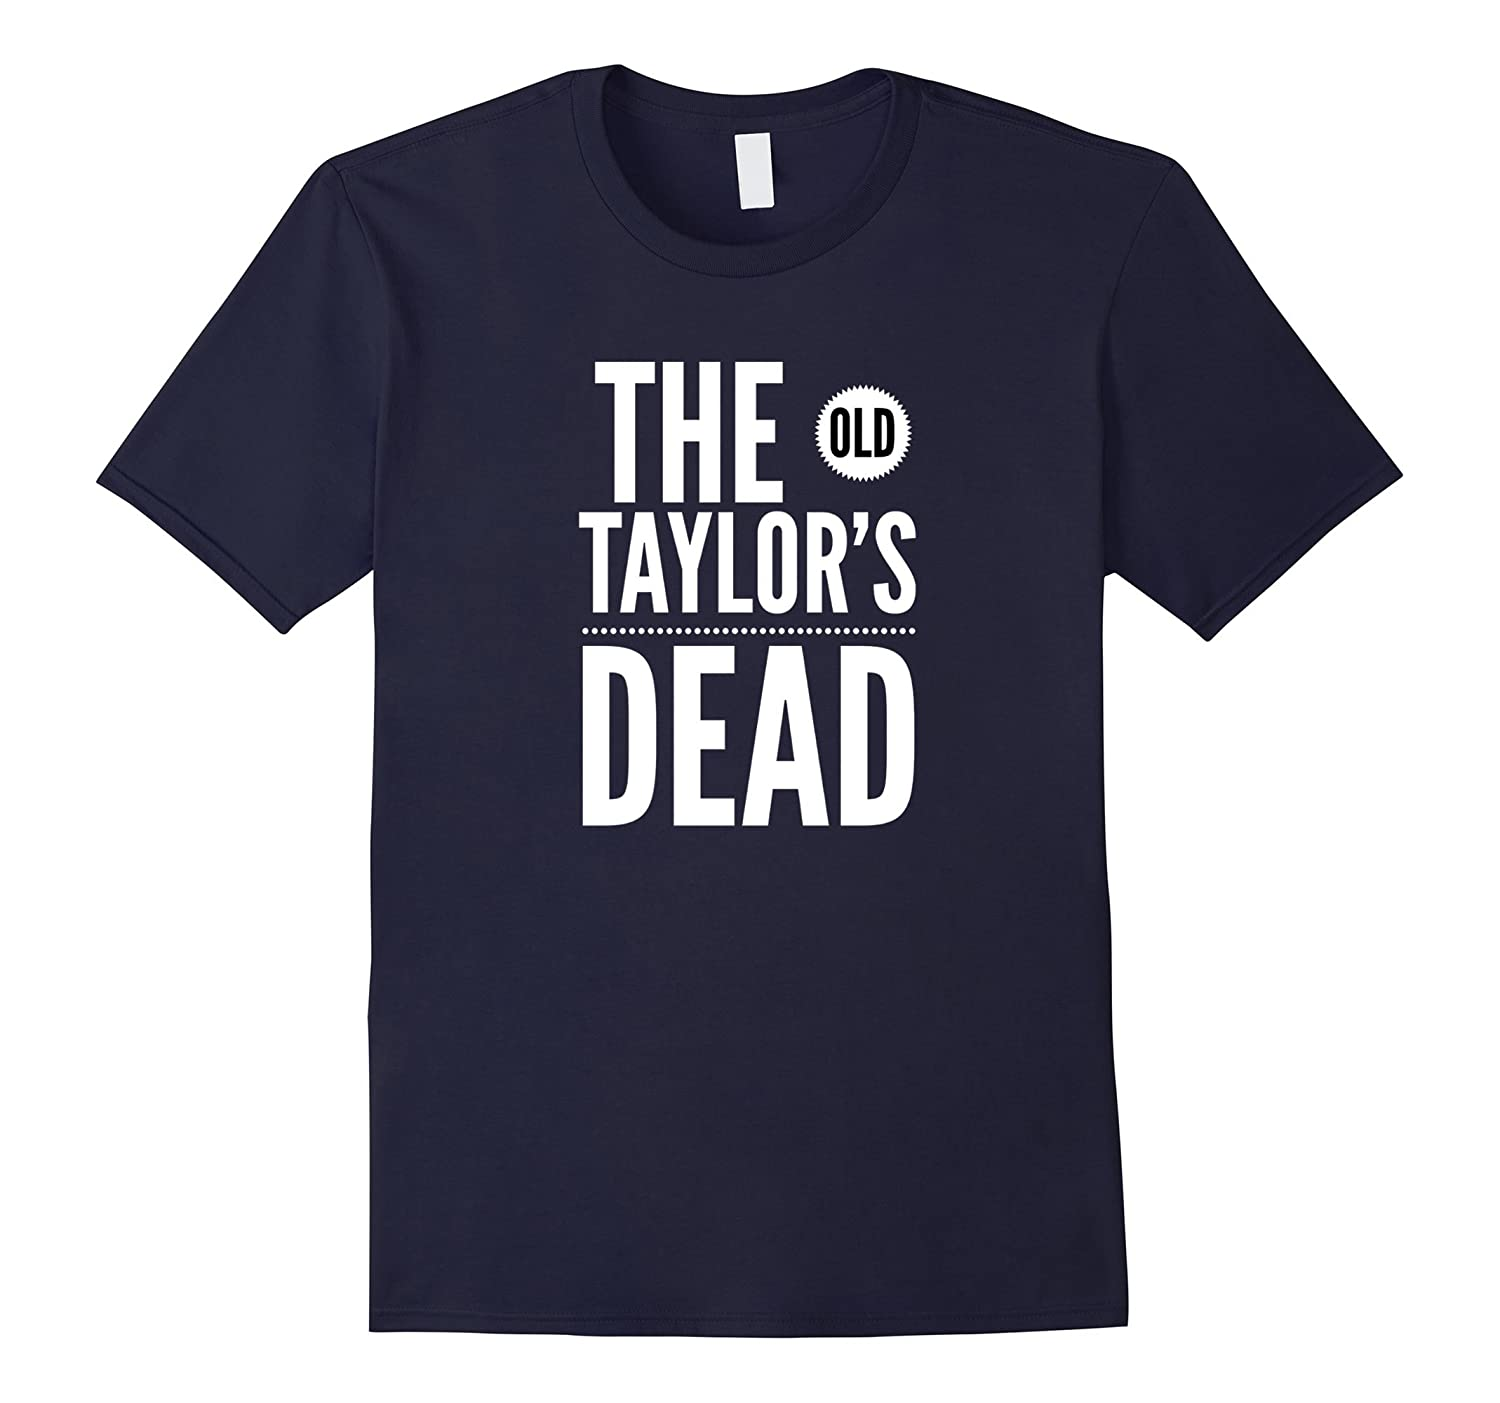 The Old Taylor's Dead Tee shirt-ANZ